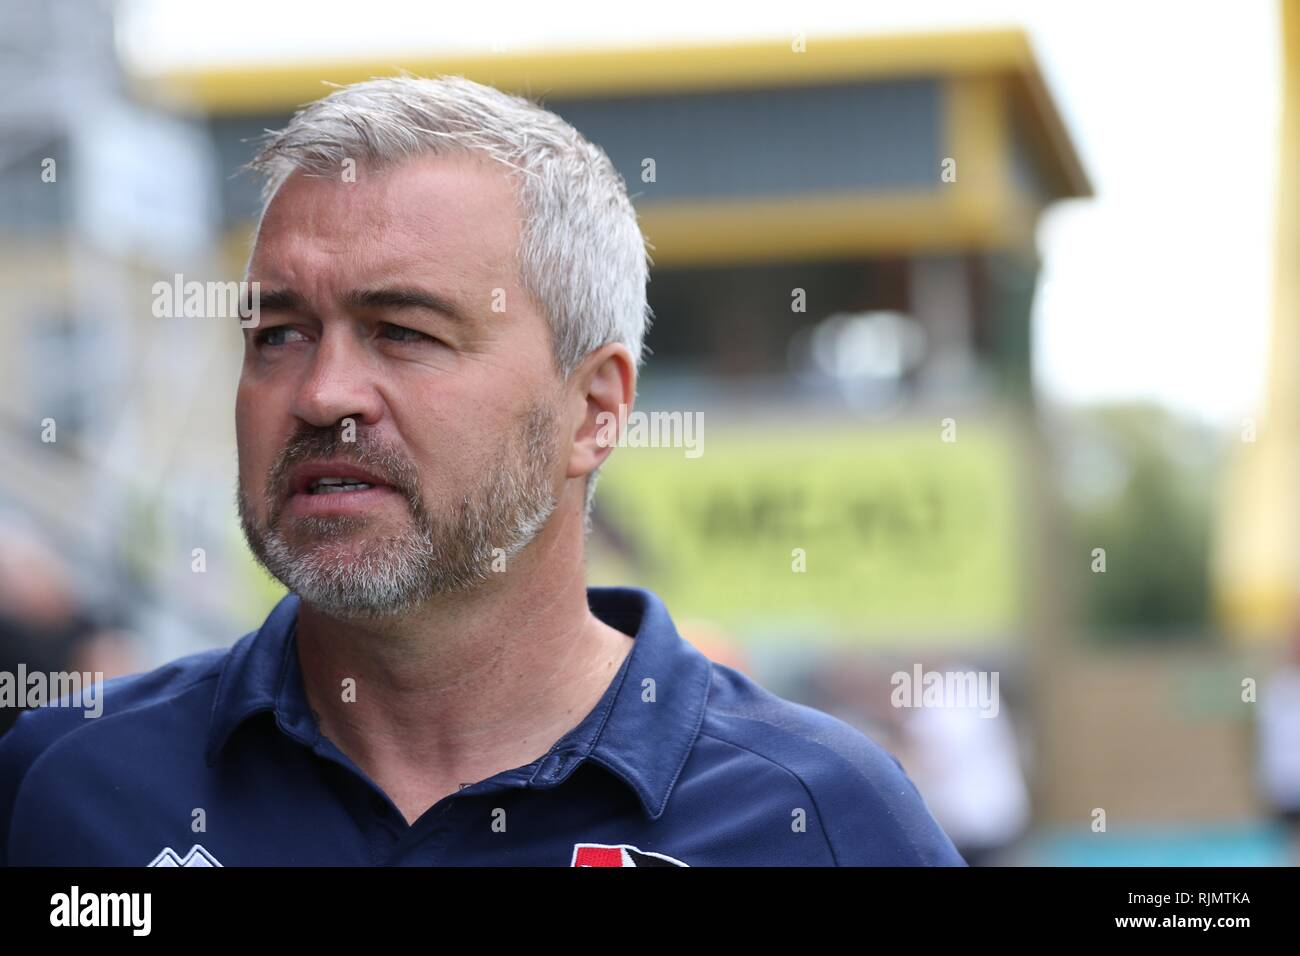 Russell Milton, long time serving player, coach, caretaker manager and 2nd in command at Cheltenham Town FC  Picture by Antony Thompson - Thousand Wor - Stock Image